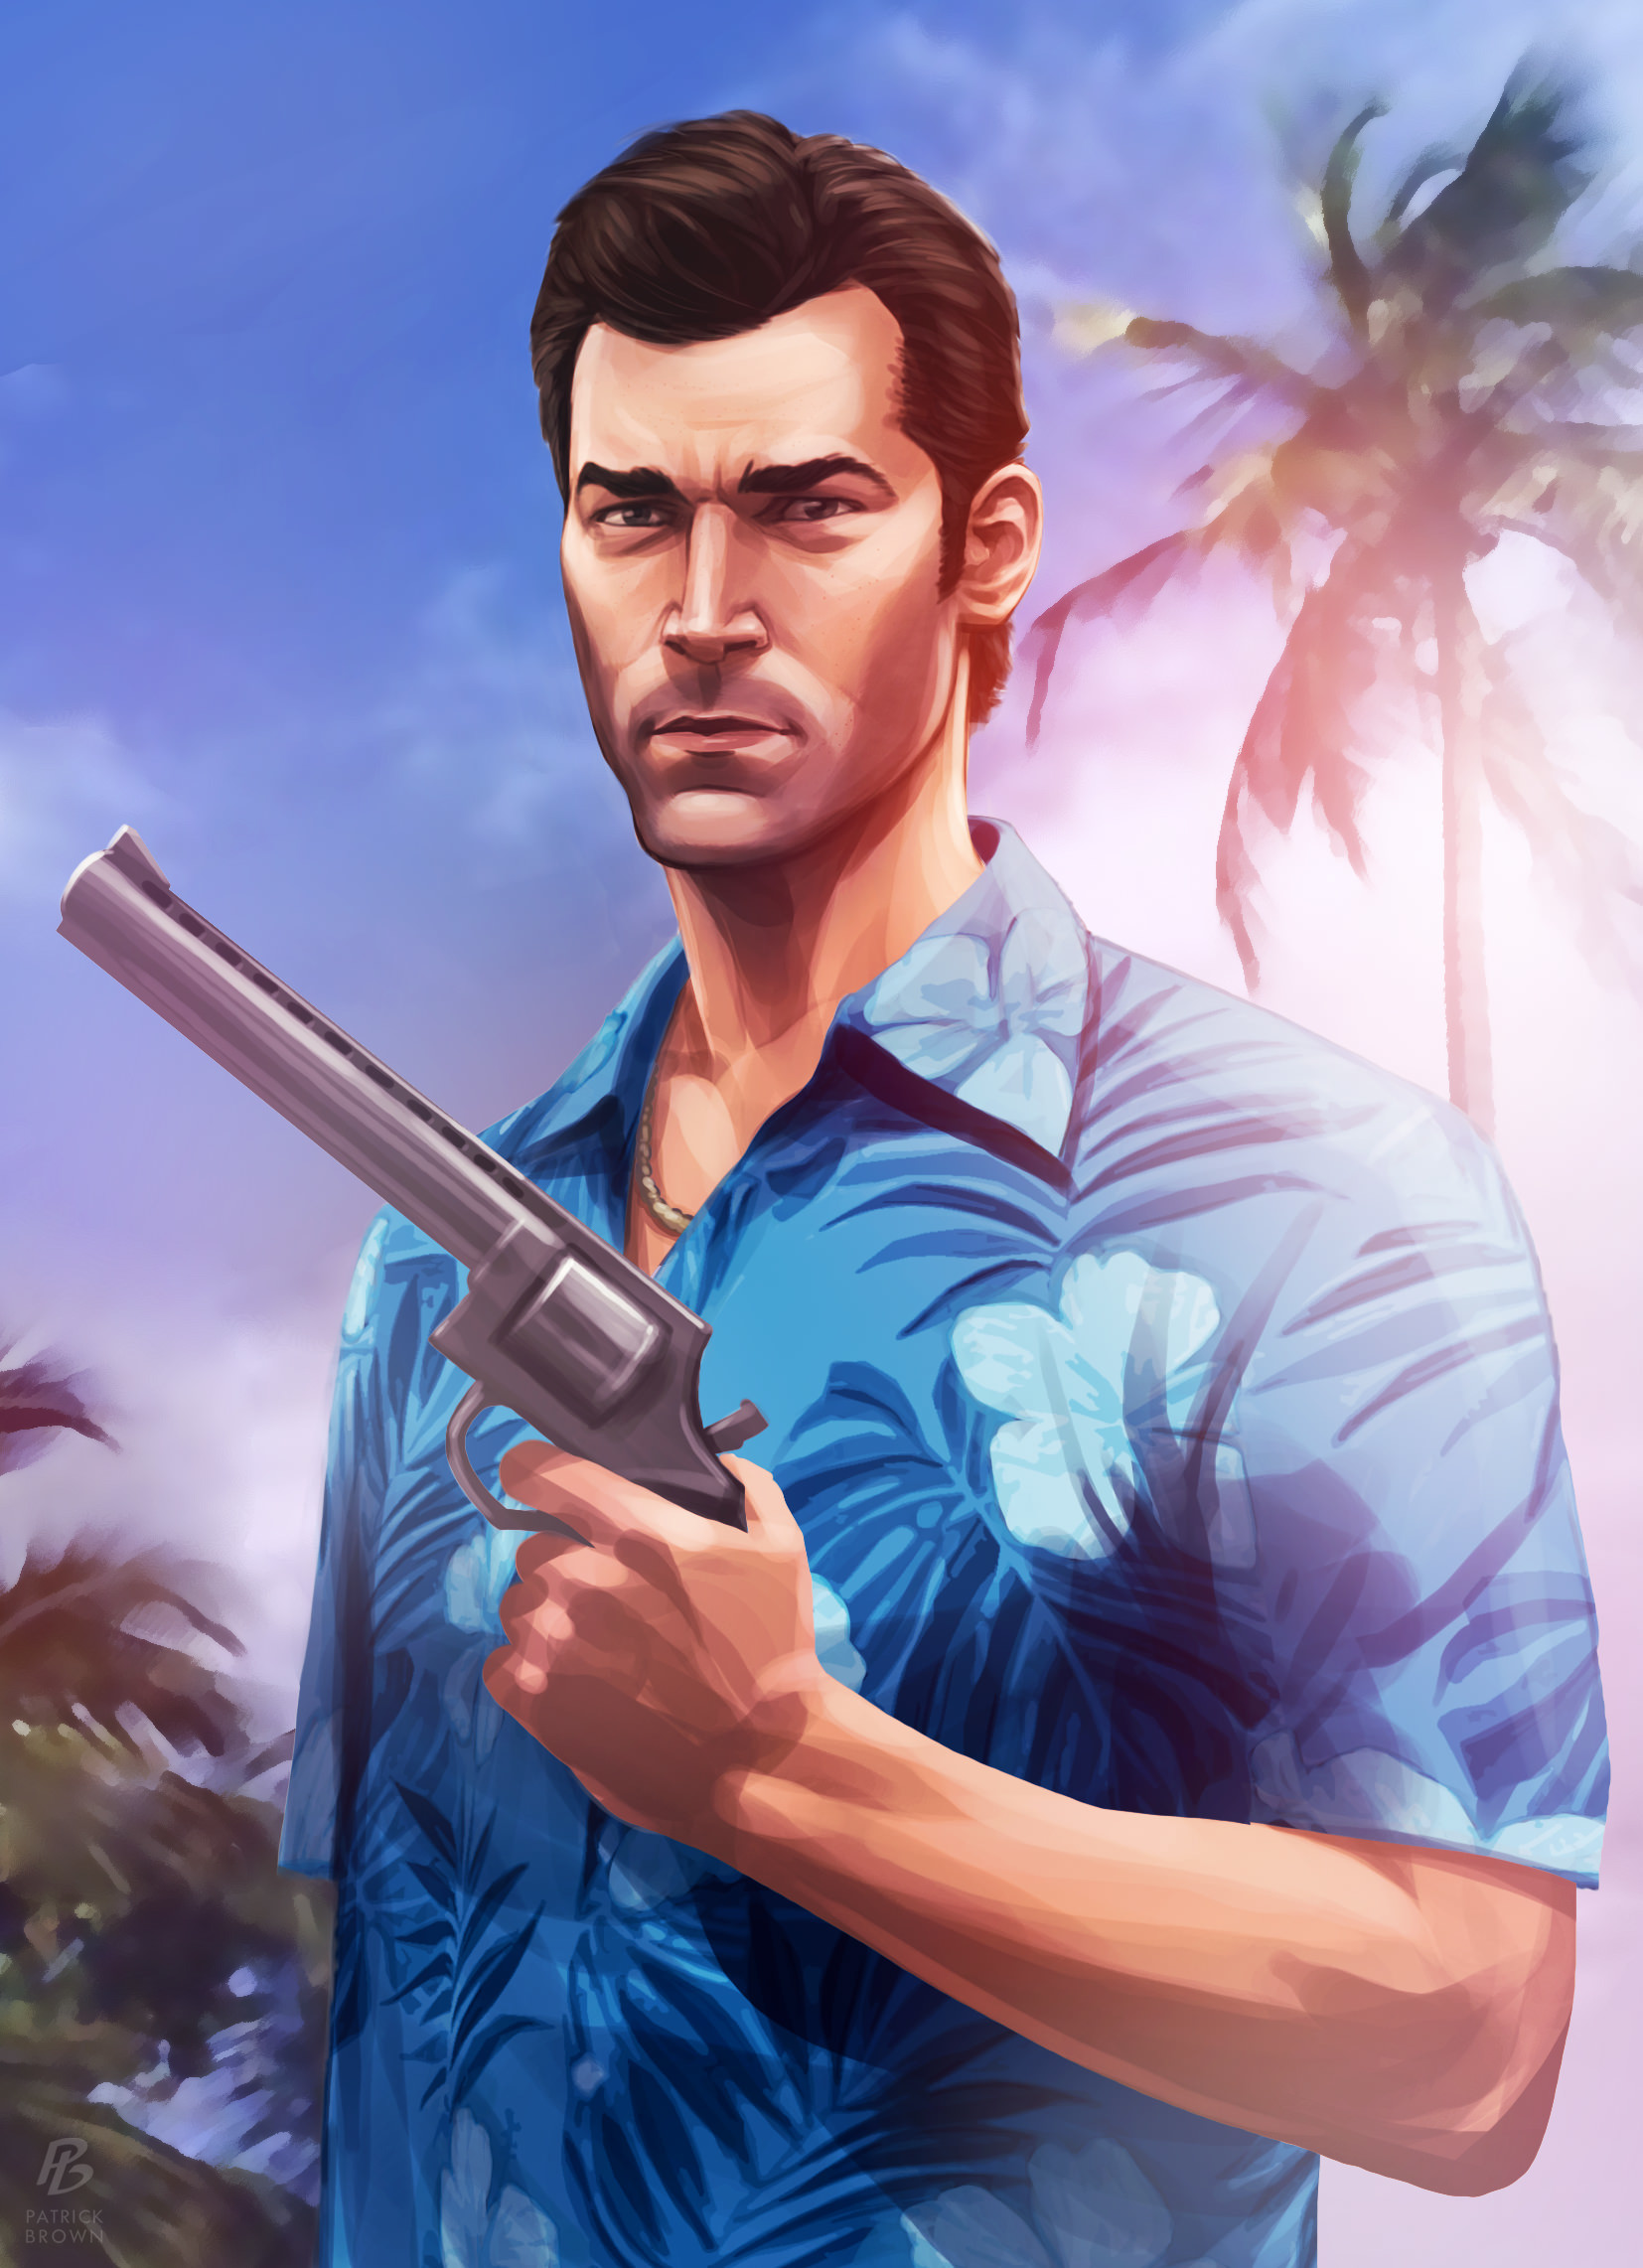 Gta vice city wallpapers 67 images 1920x1080 voltagebd Gallery